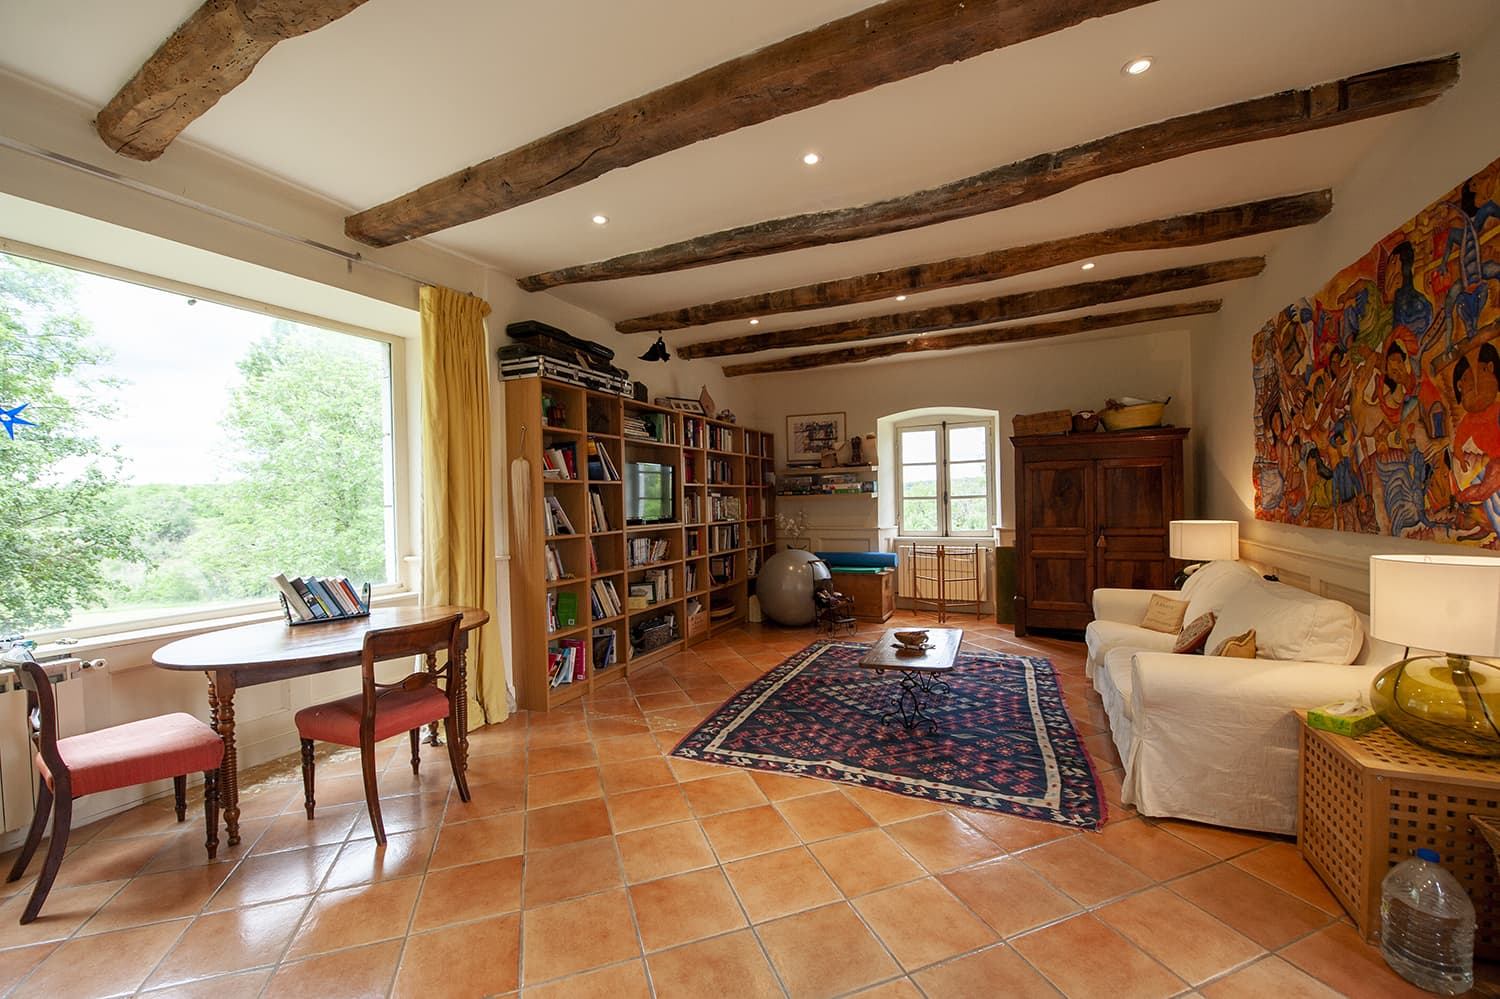 Living room in Crégols holiday home, Occitanie